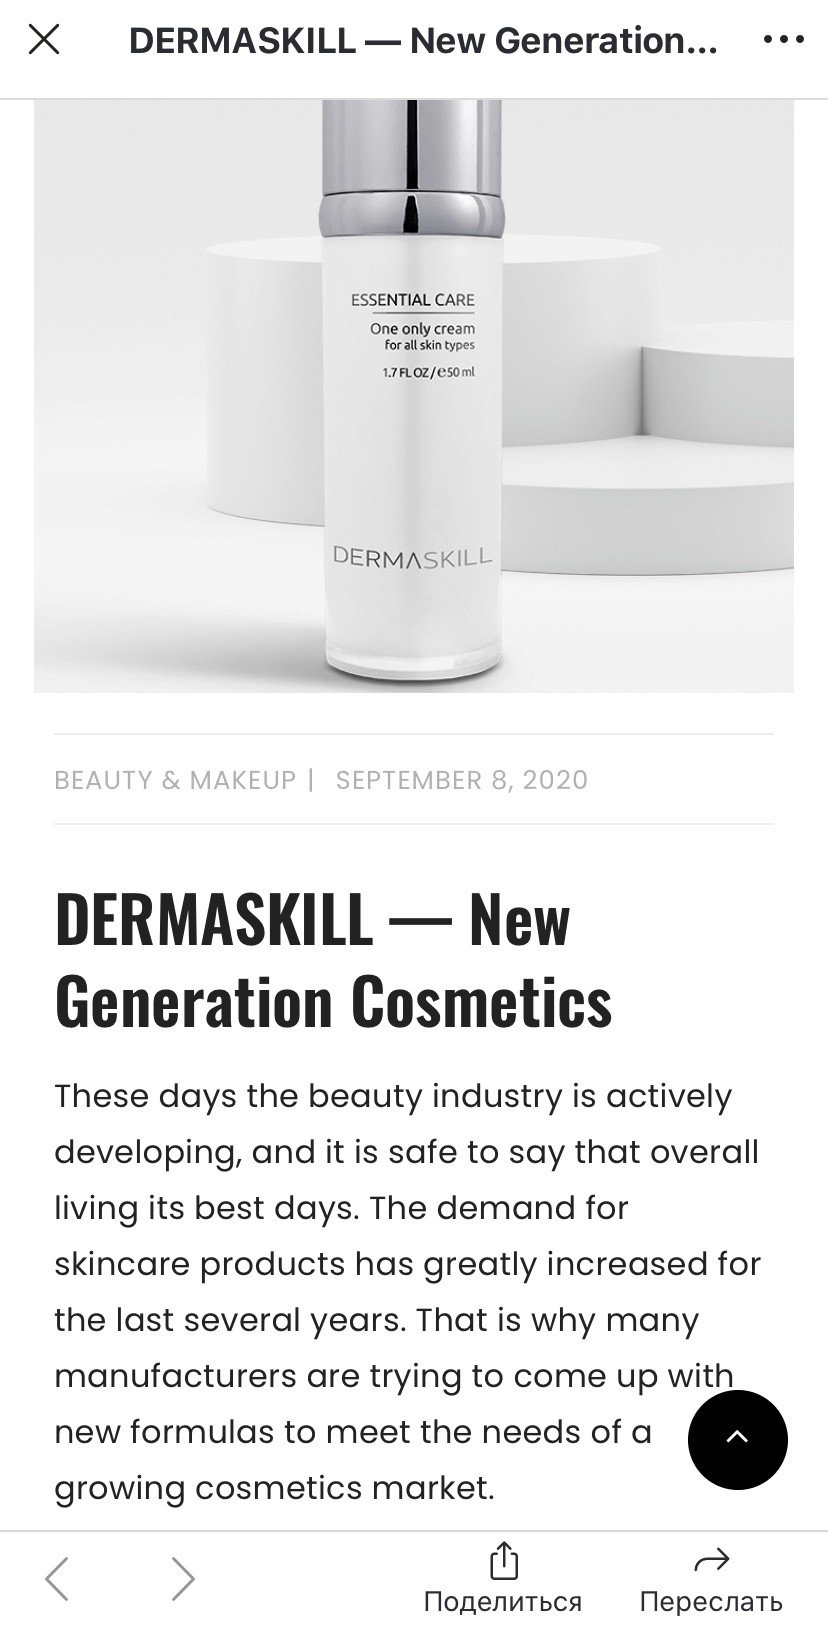 Copywriting. DERMASKILL — new generation cosmetics. изображение 1